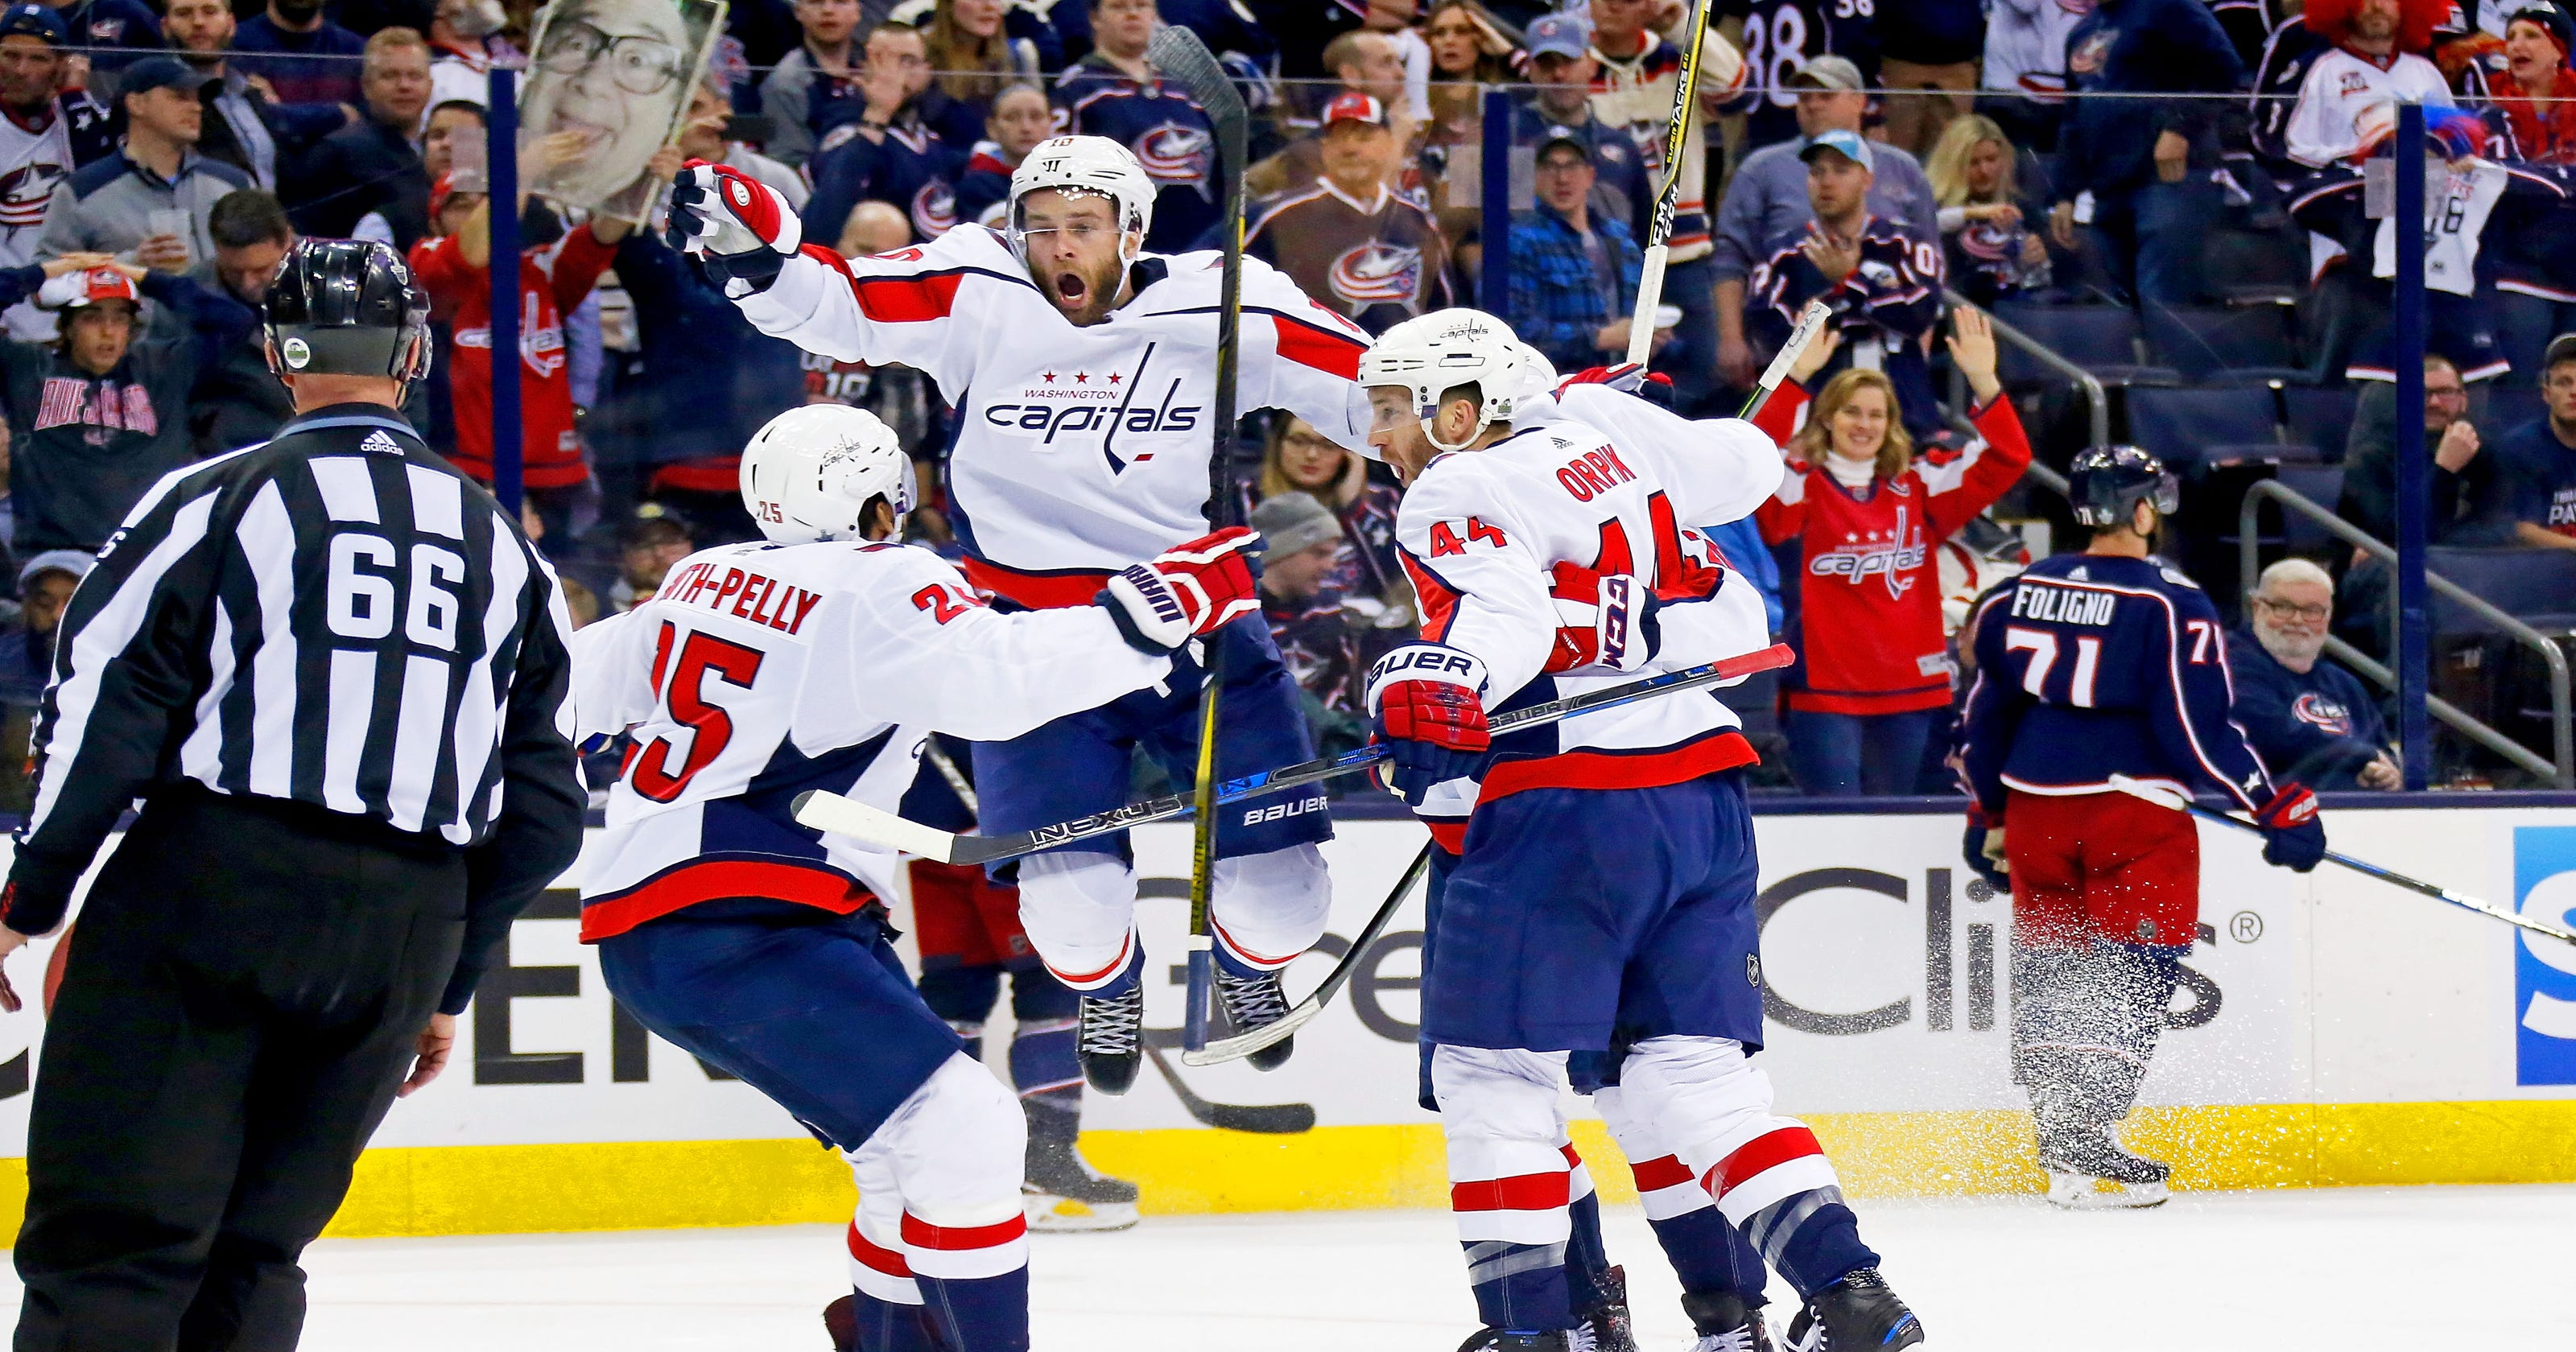 365987c922f Capitals get back into series with Blue Jackets with double-overtime win